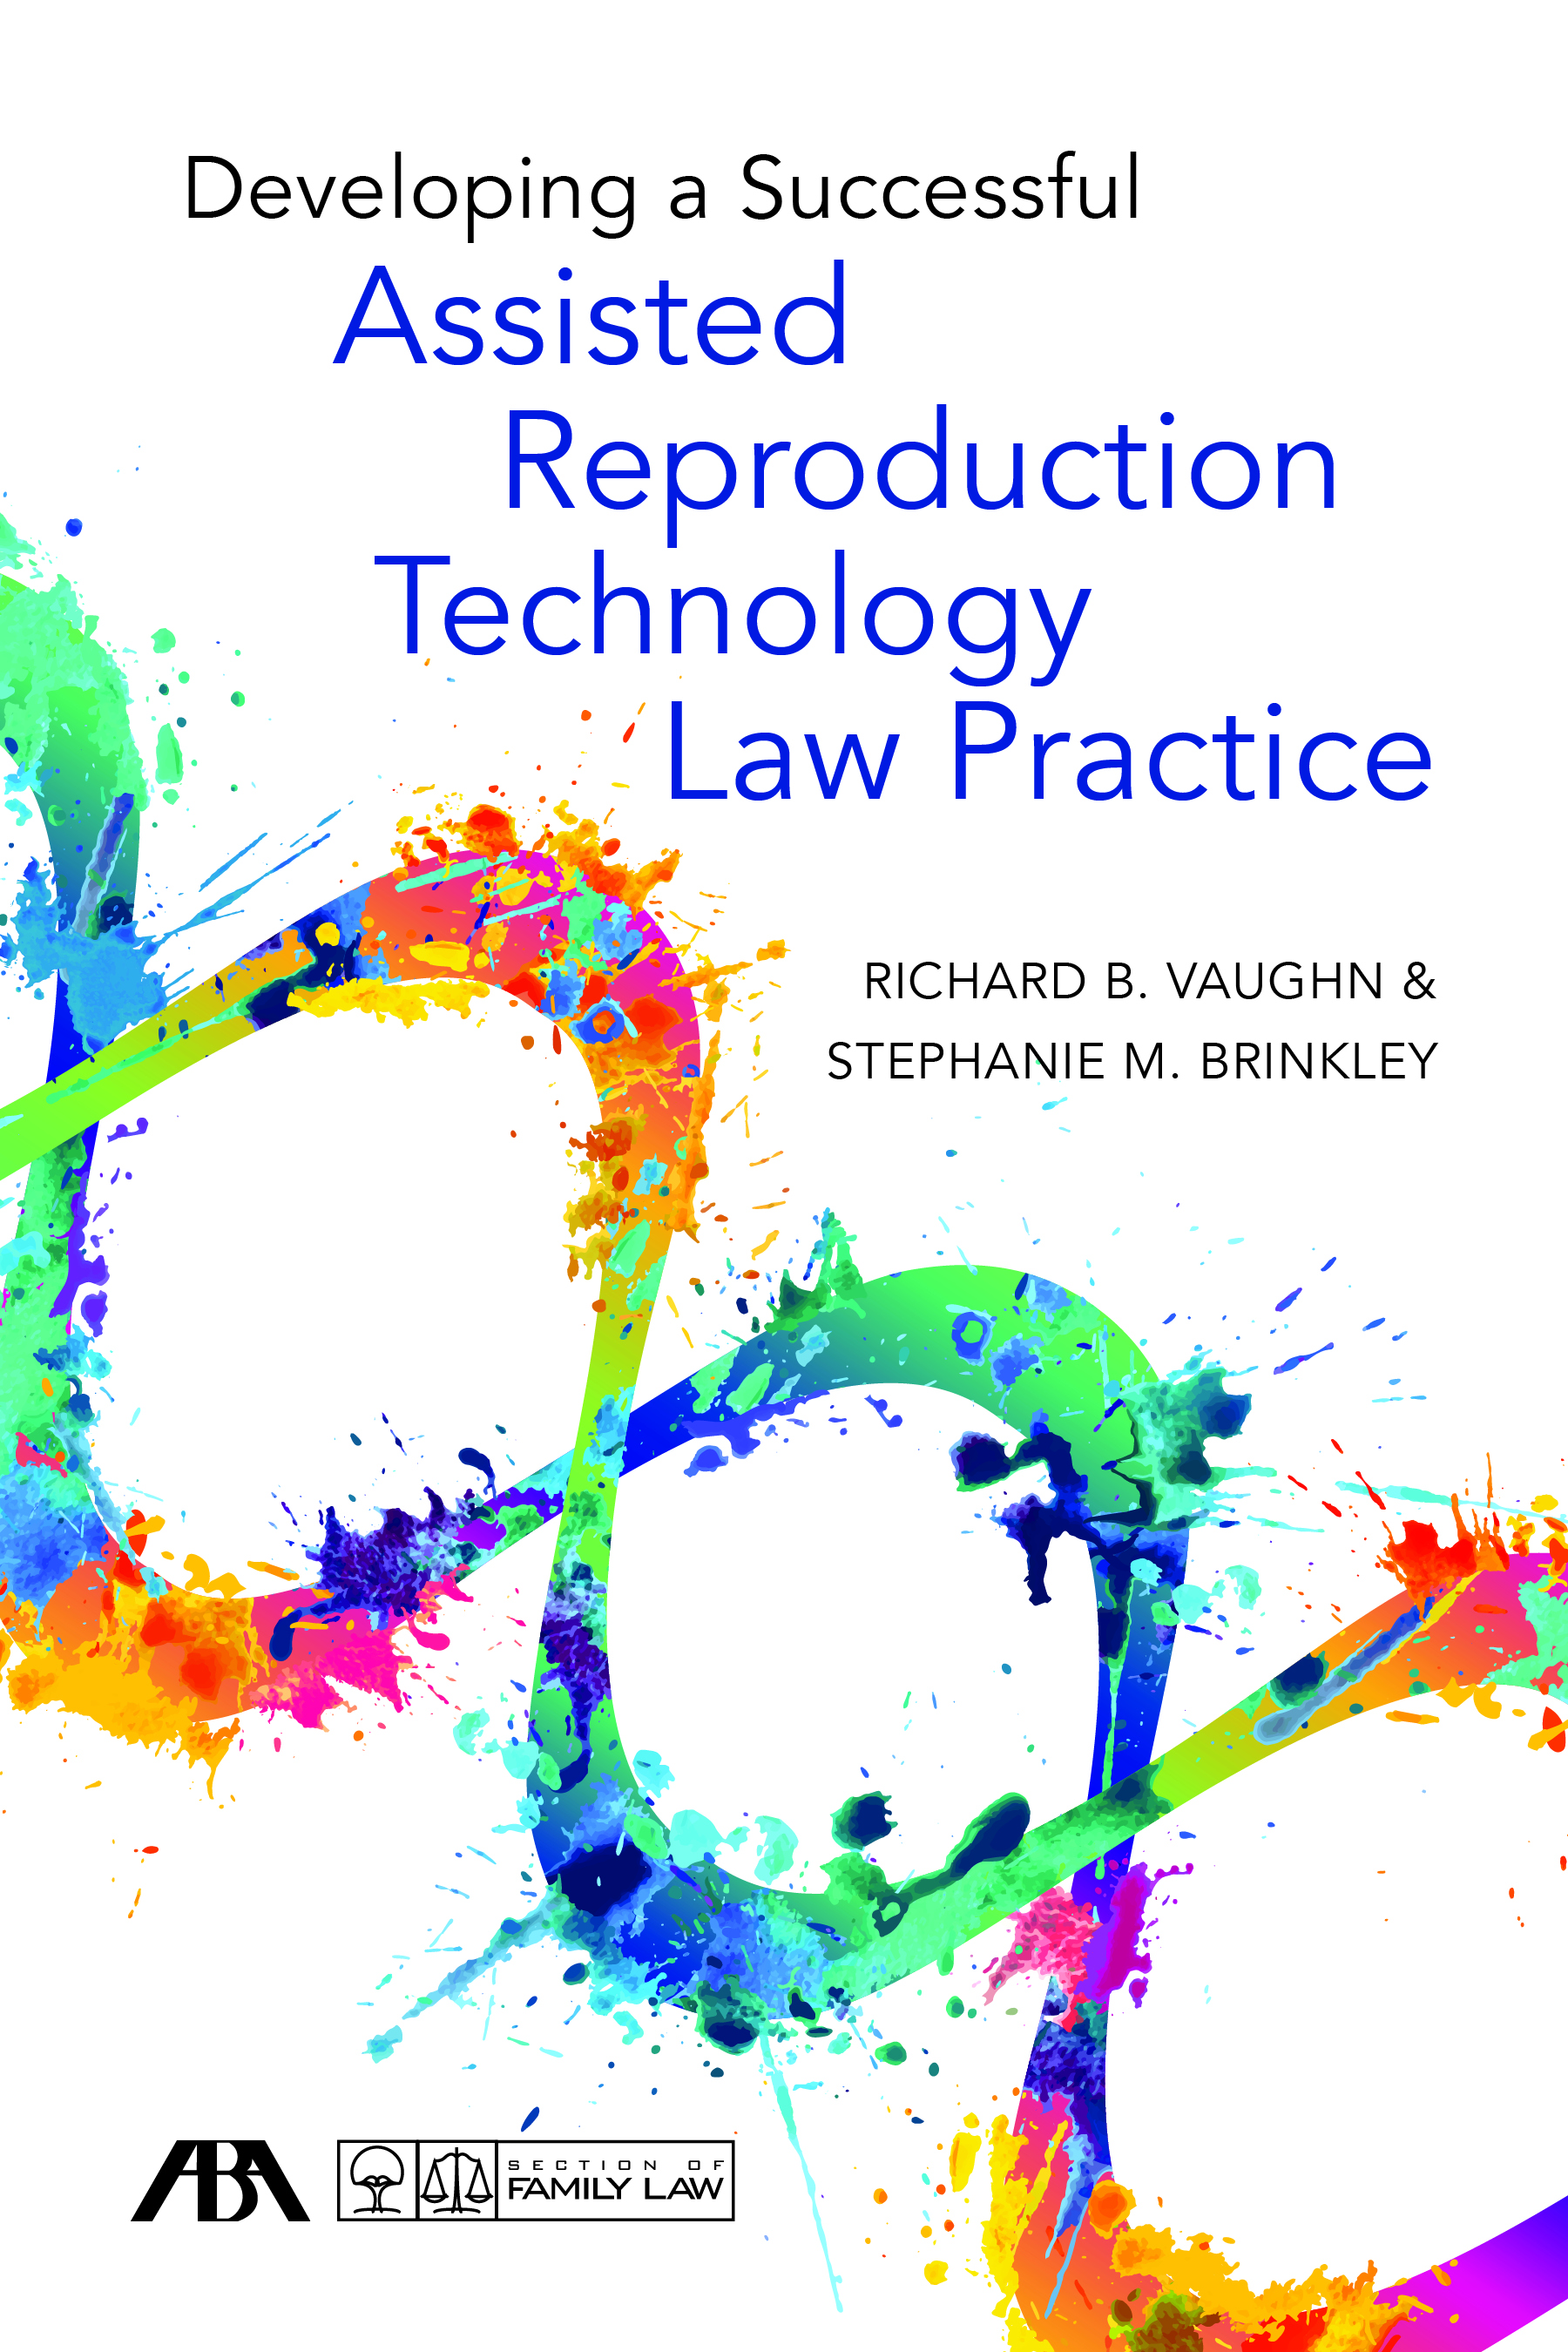 Developing a Successful Assisted Reproduction Technology Law Practice